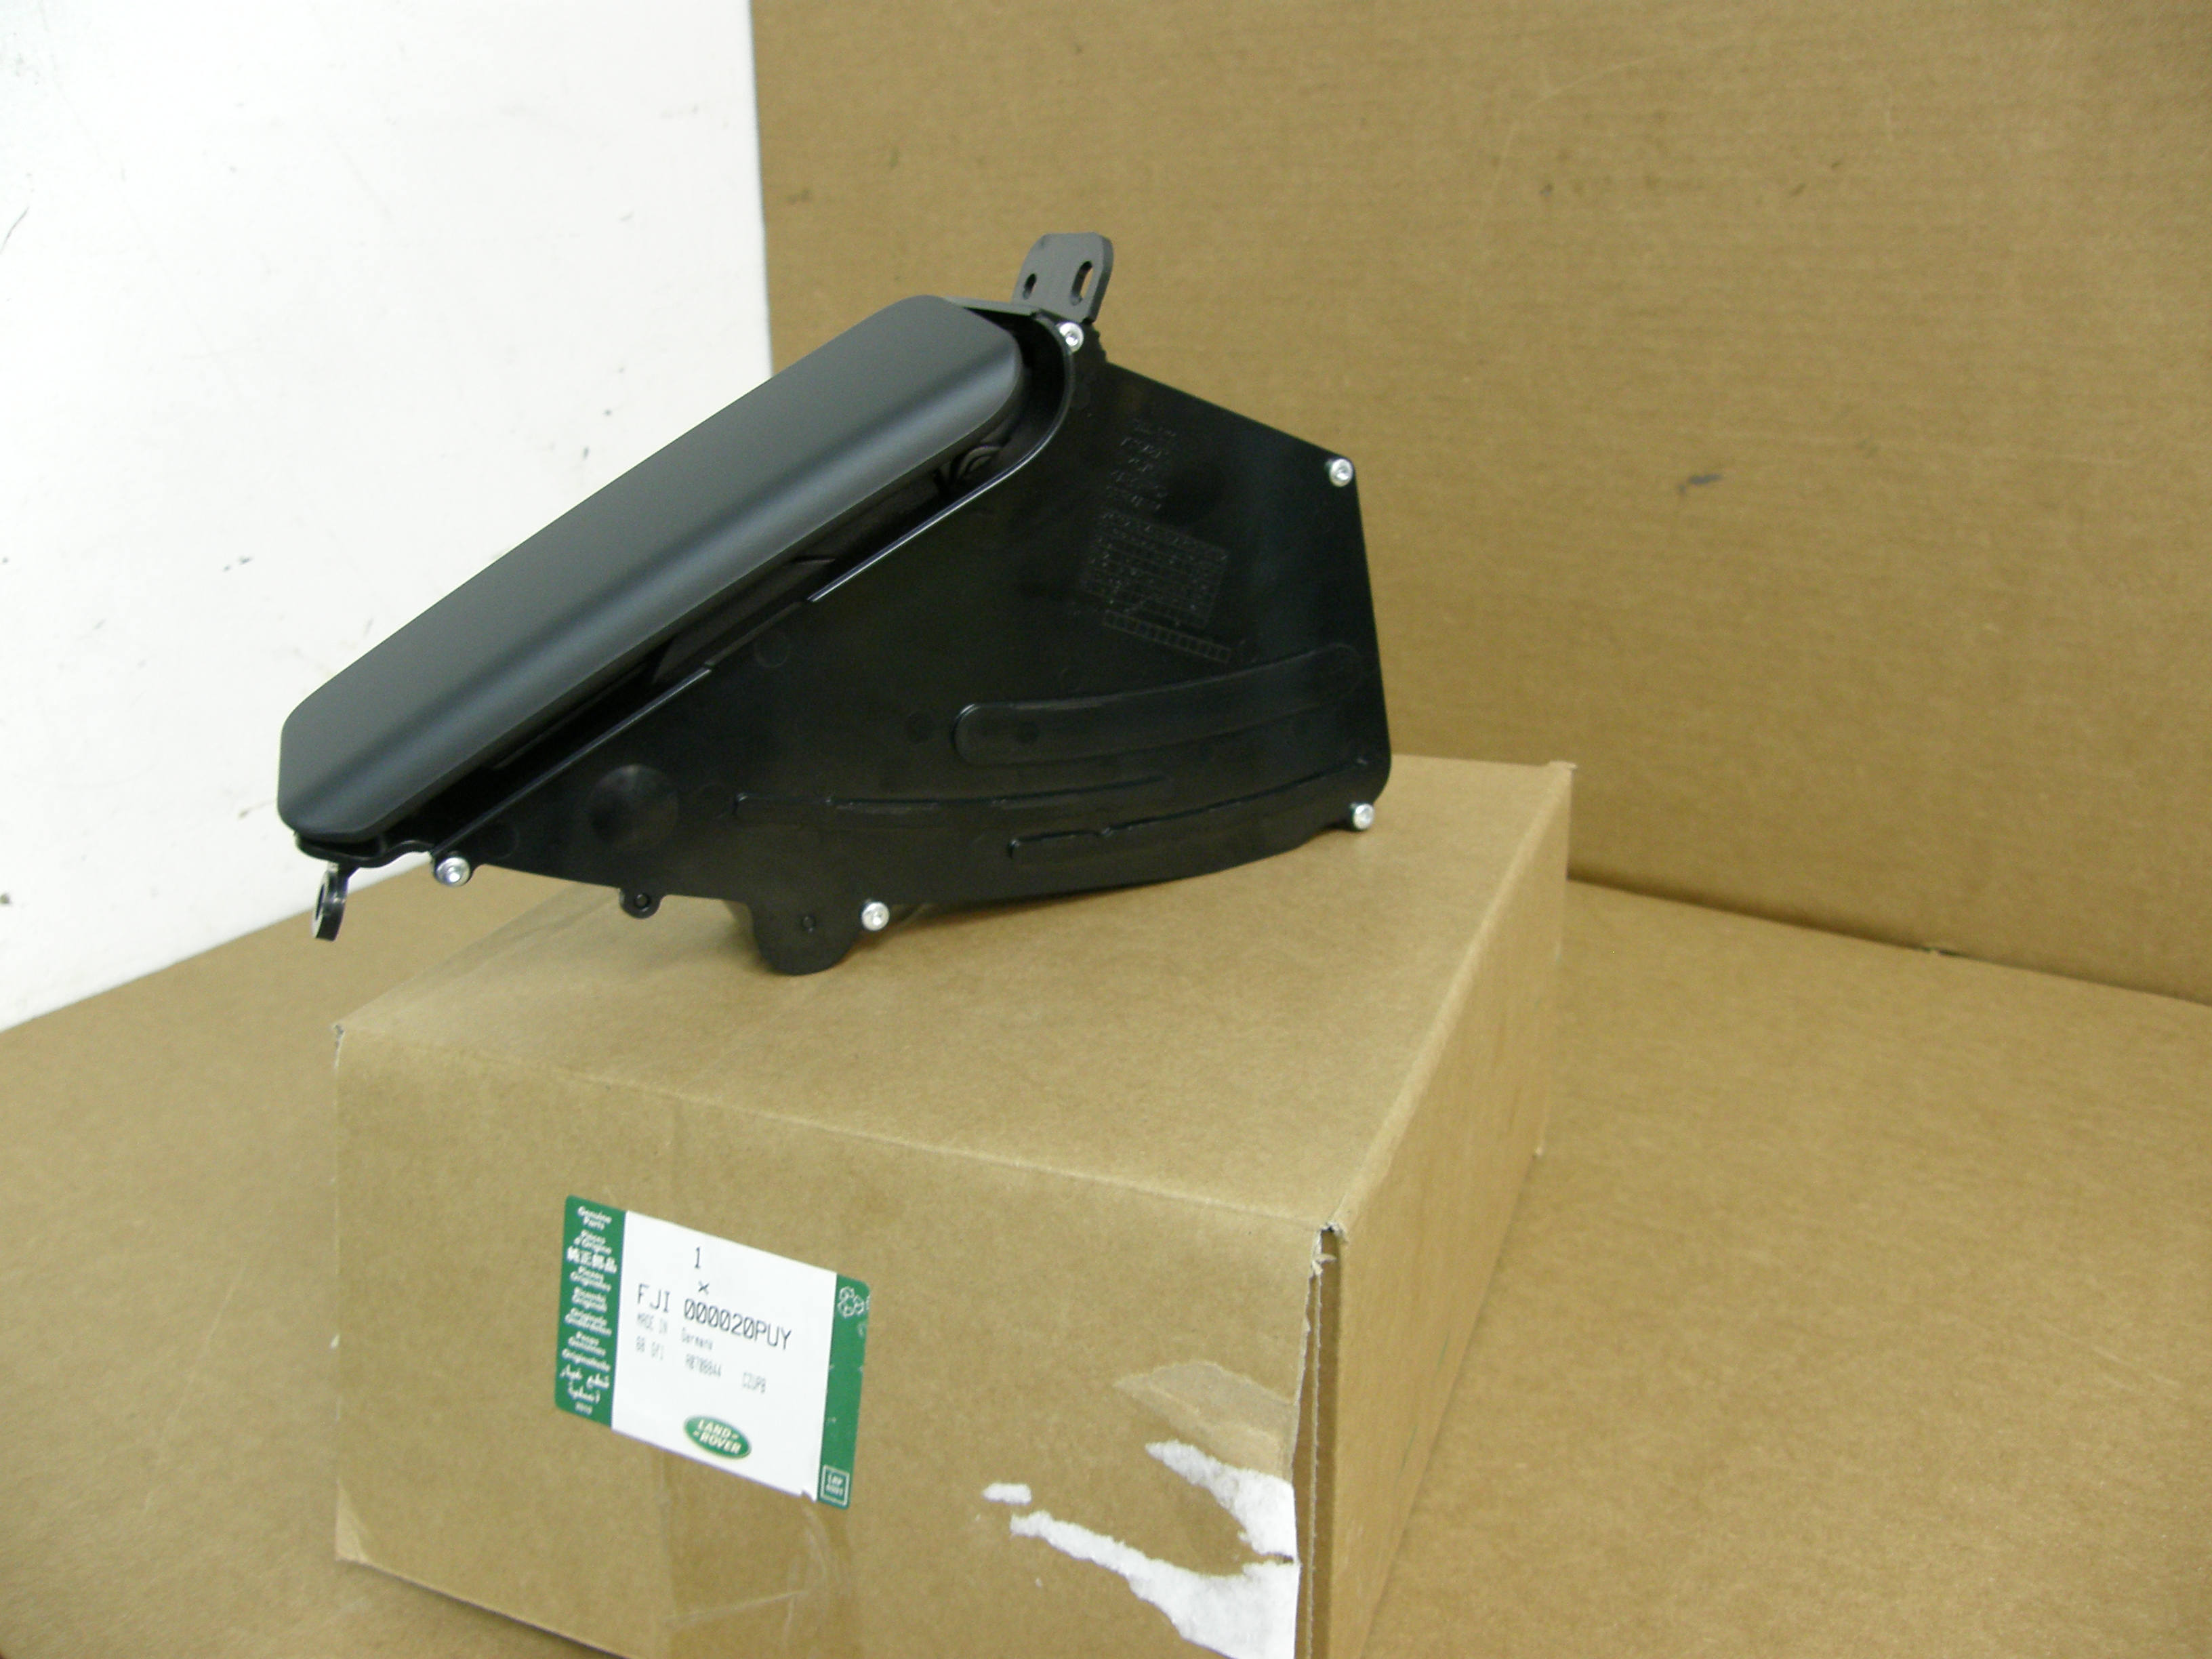 Land Rover Cup Holder Center Console Range Rover Up 06' New FJI000020PUY